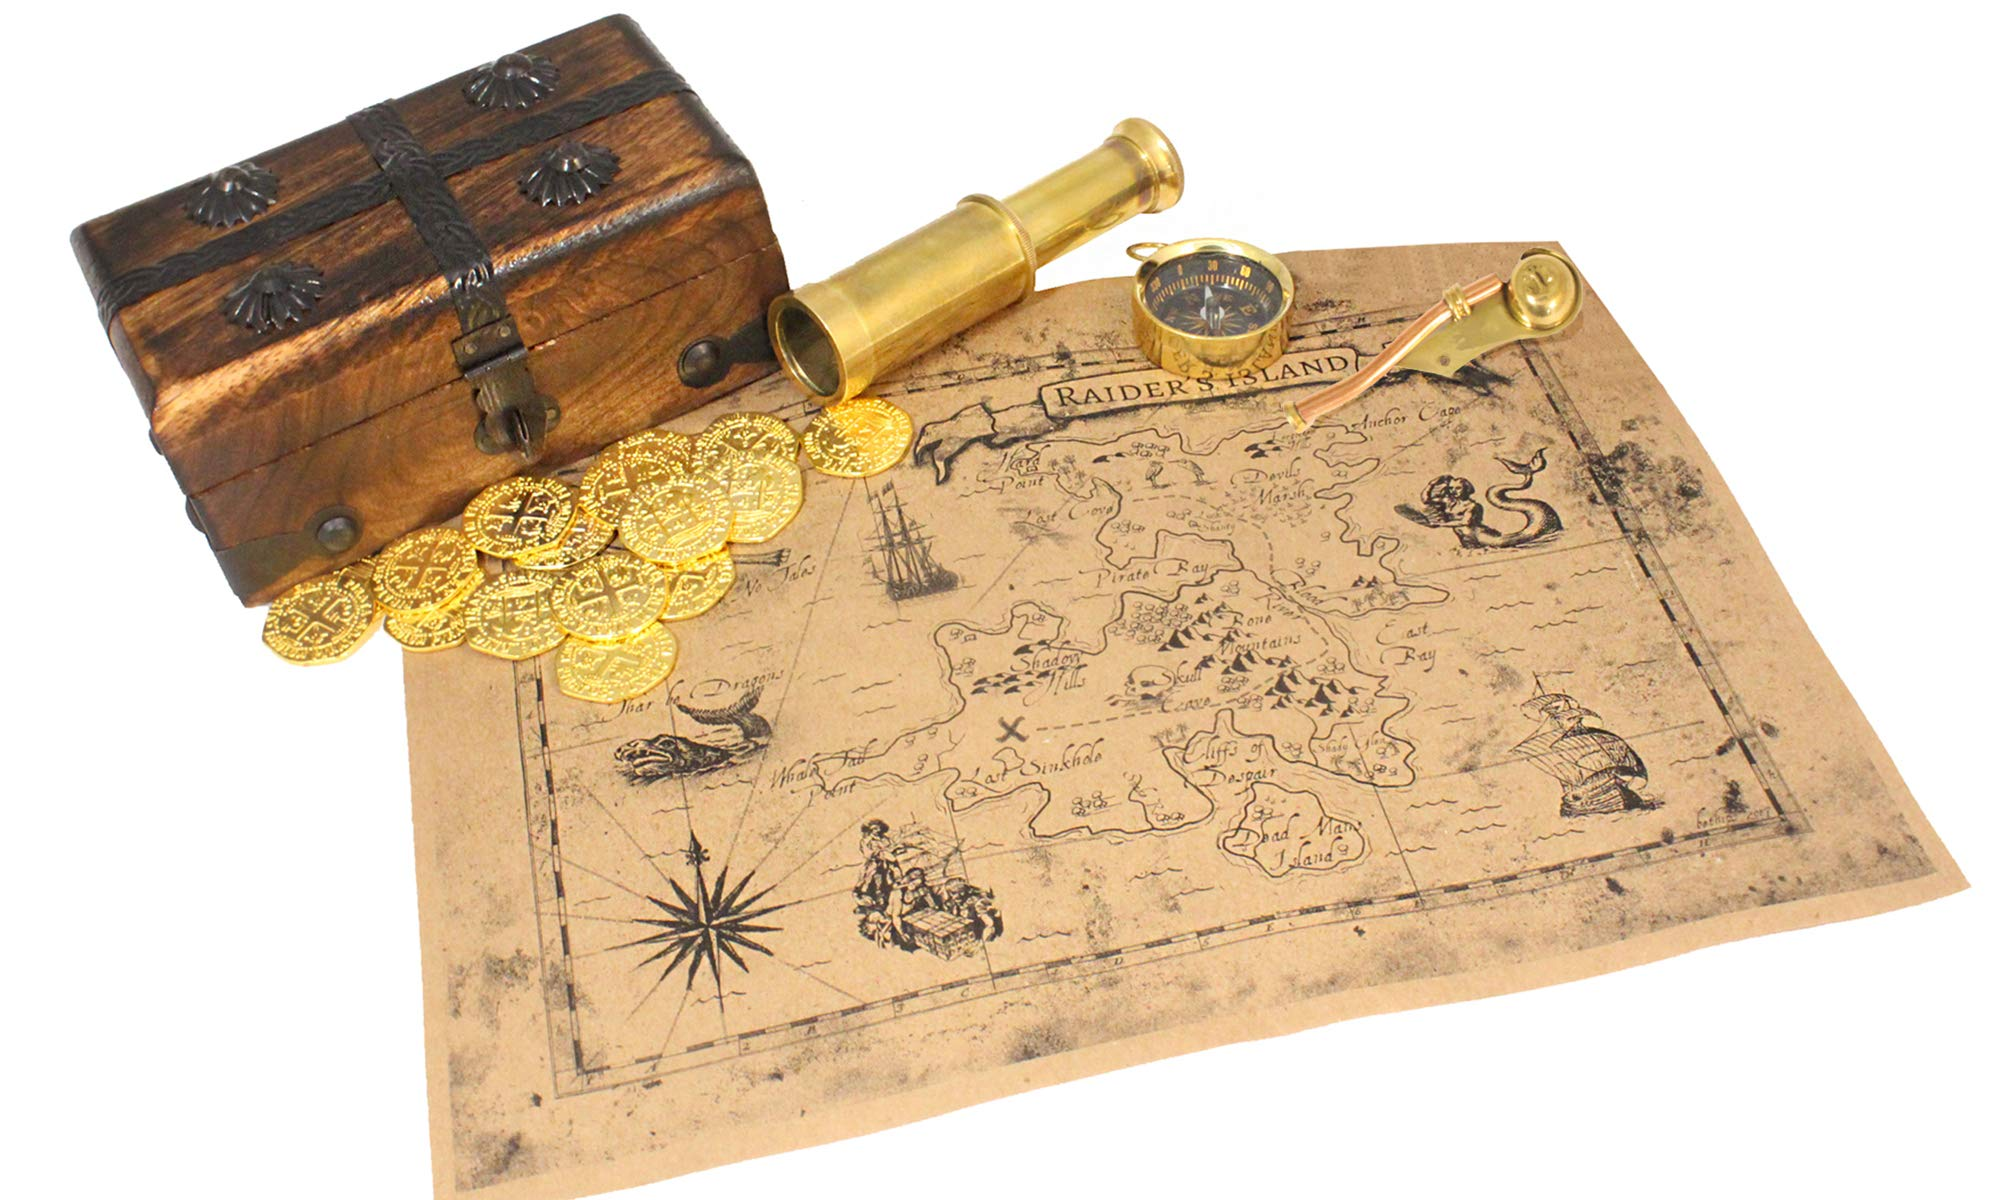 Pirate Treasure Chest Solid Wood With Telescope Spyglass Brass Functional Compass, Bosun Whistle, Metal Coins, Treasure Map Hunt By Well Pack Box,